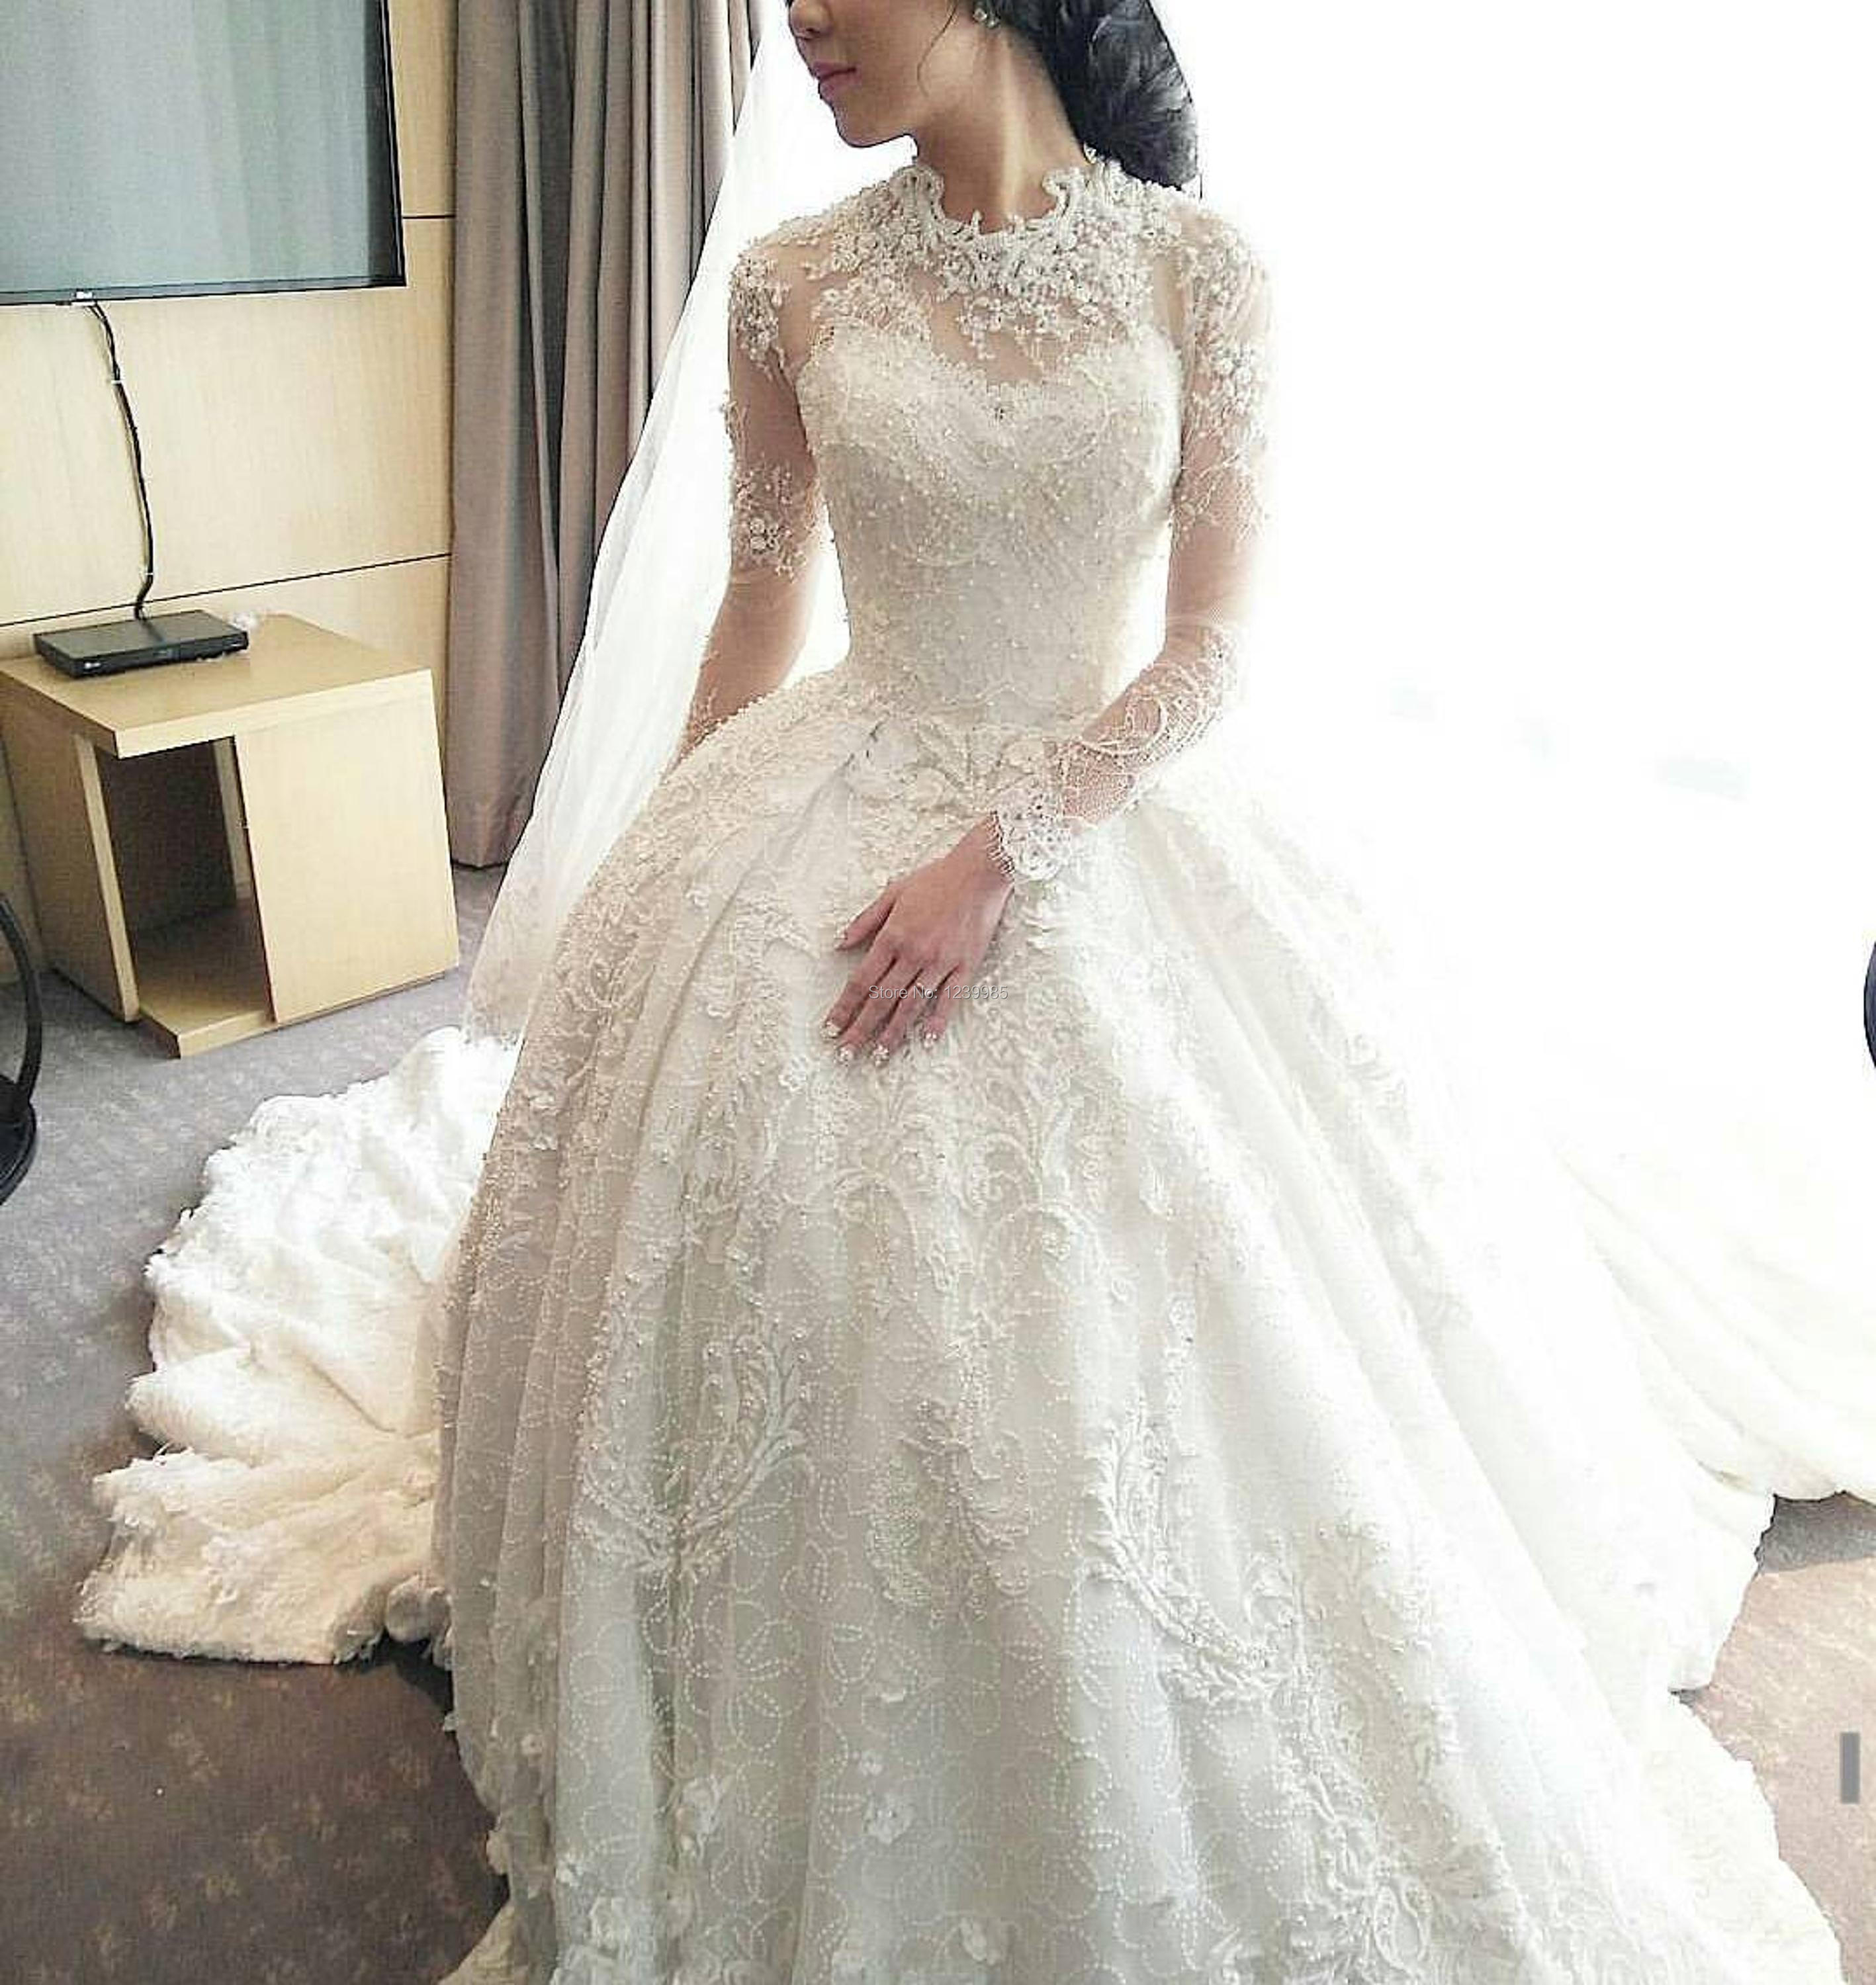 Wedding Gown With Neck Detail: Princess Wedding Dress 2017 High Neck Long Sleeves